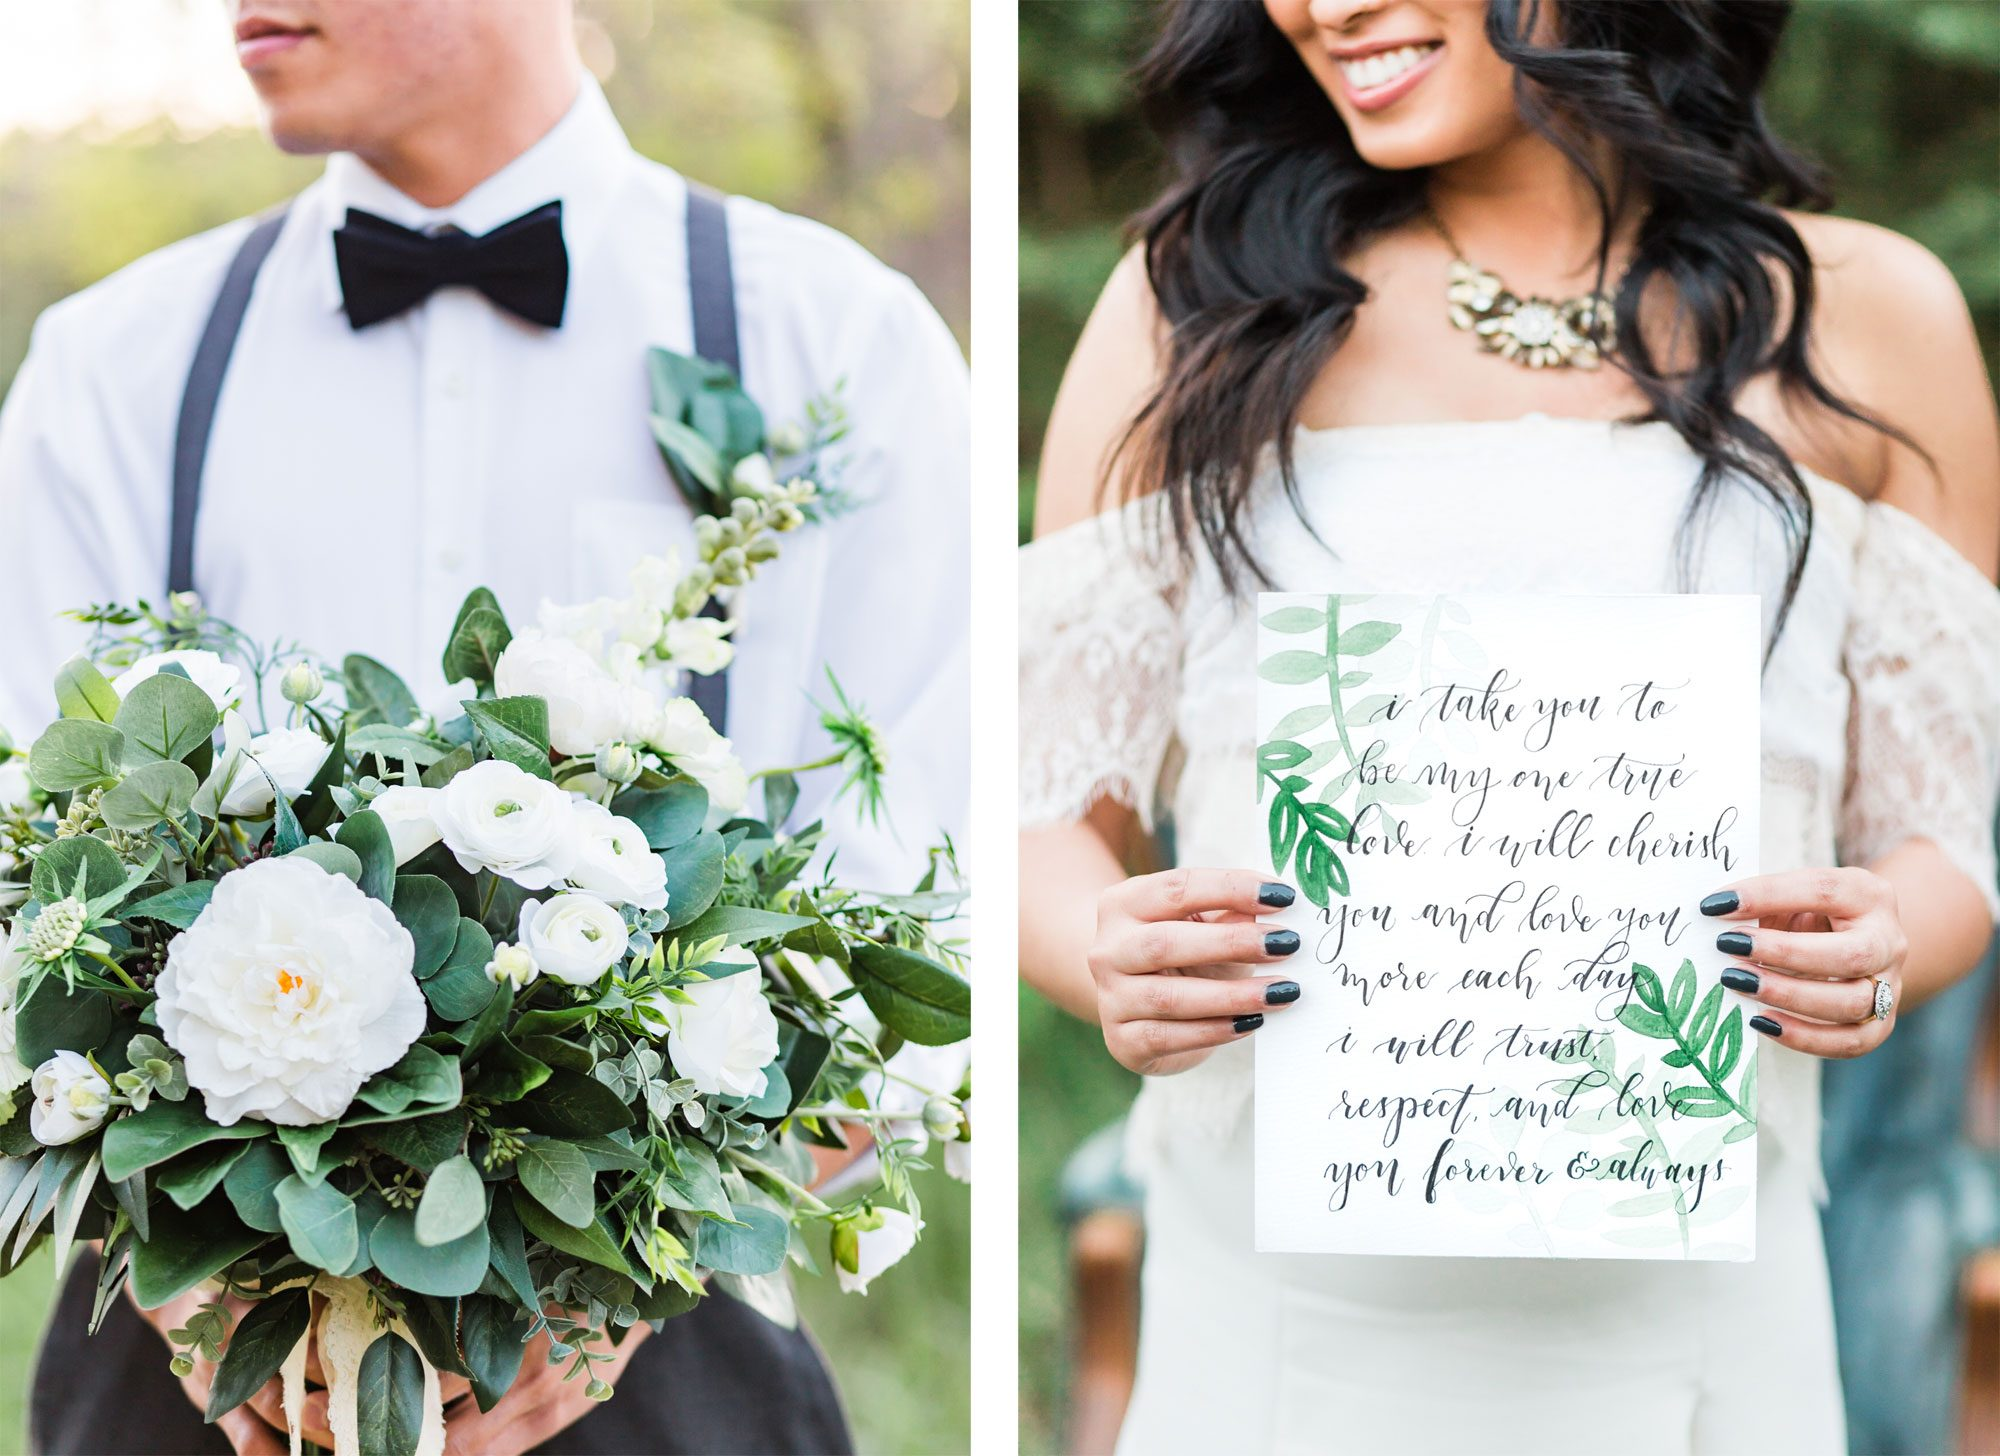 Calligraphy vows & lush floral bouquet